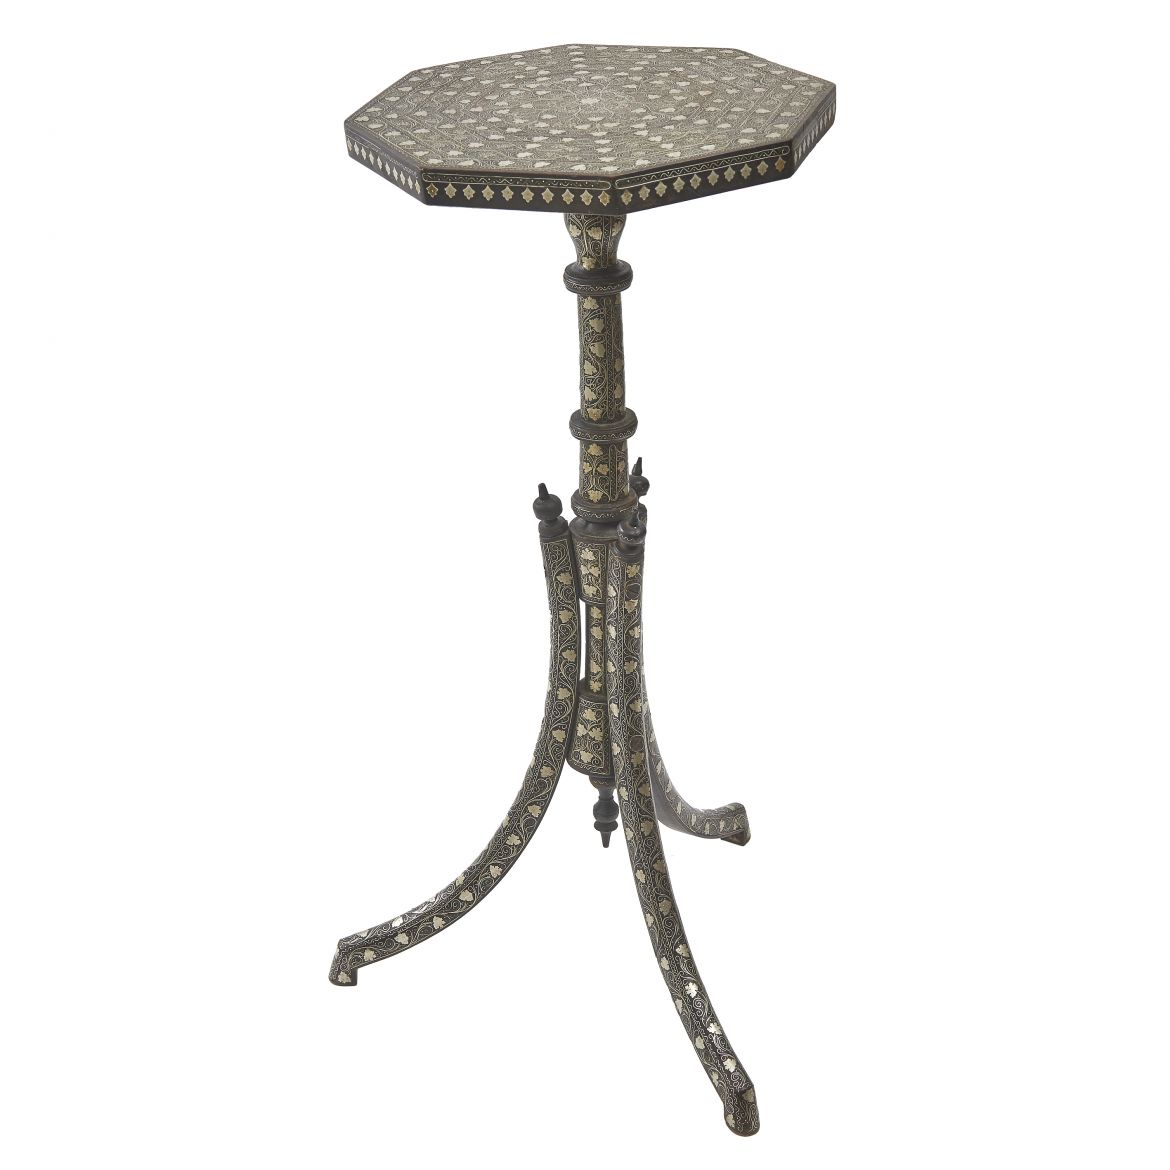 Ottoman Silver Inlaid Palmwood Tripod Table